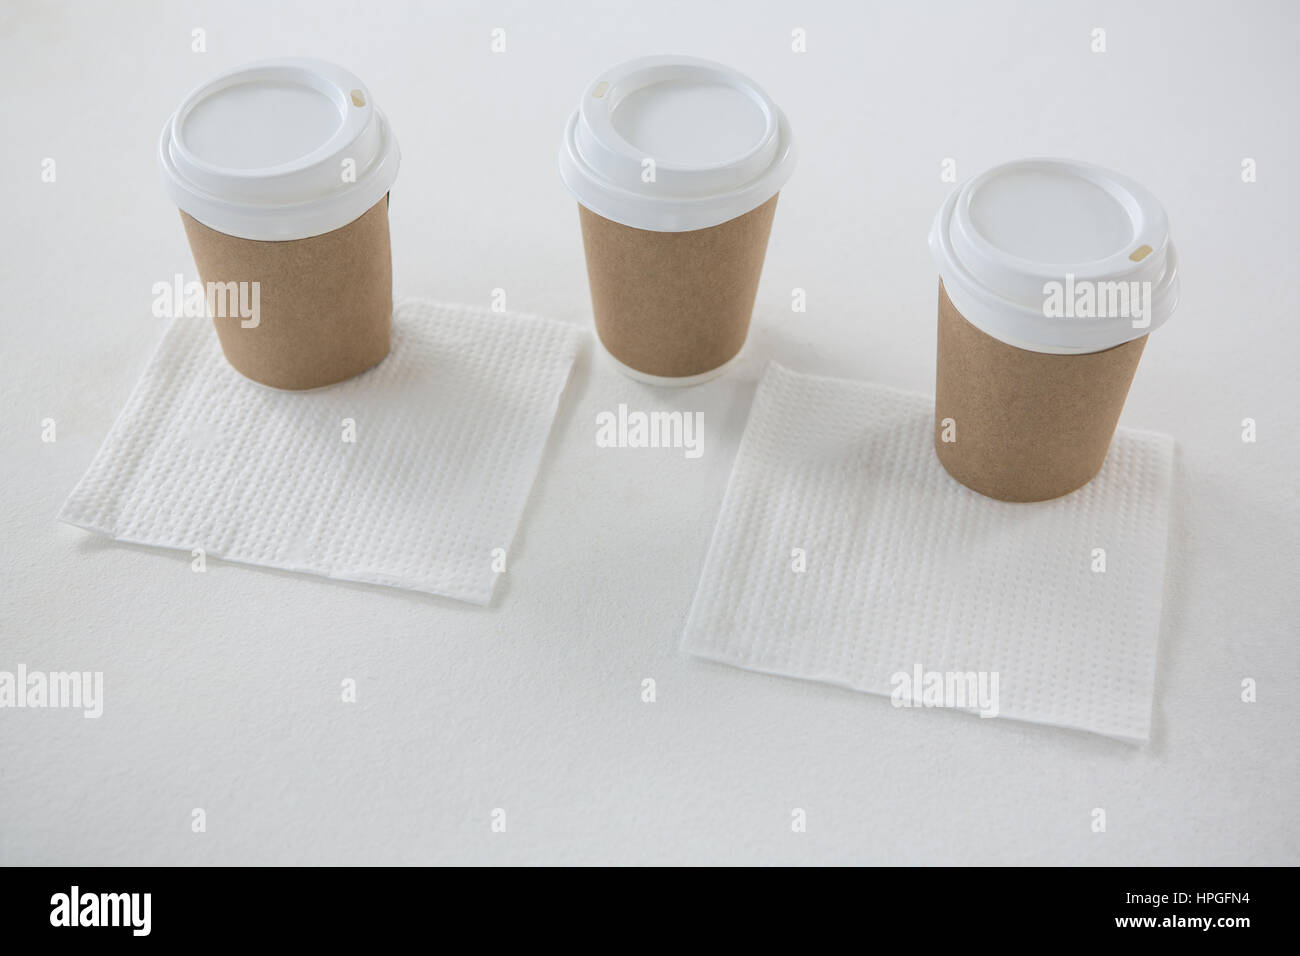 Disposable cups served with tissue papers on white background - Stock Image